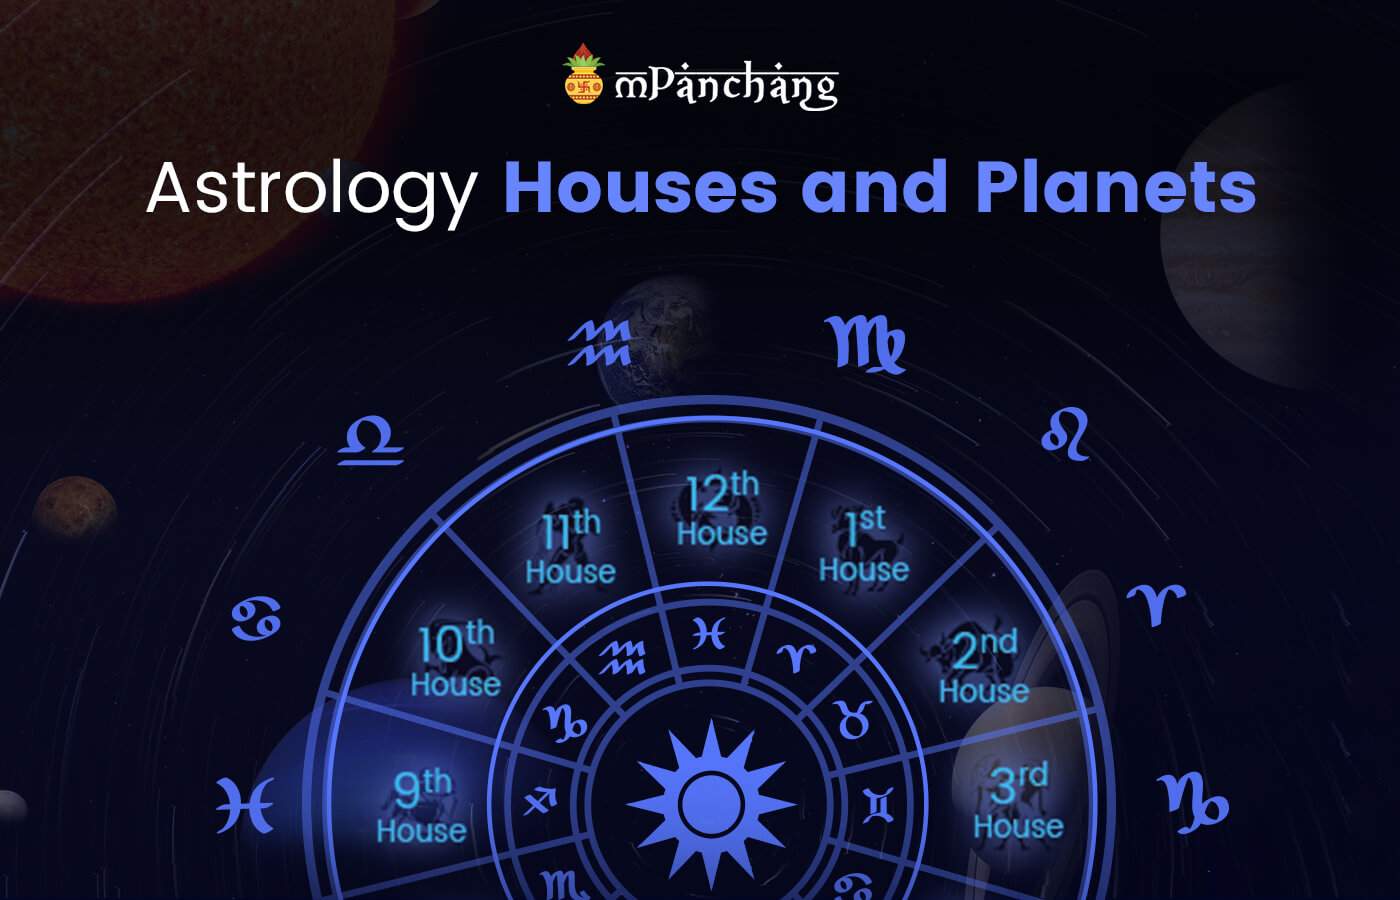 Astrology houses and planets